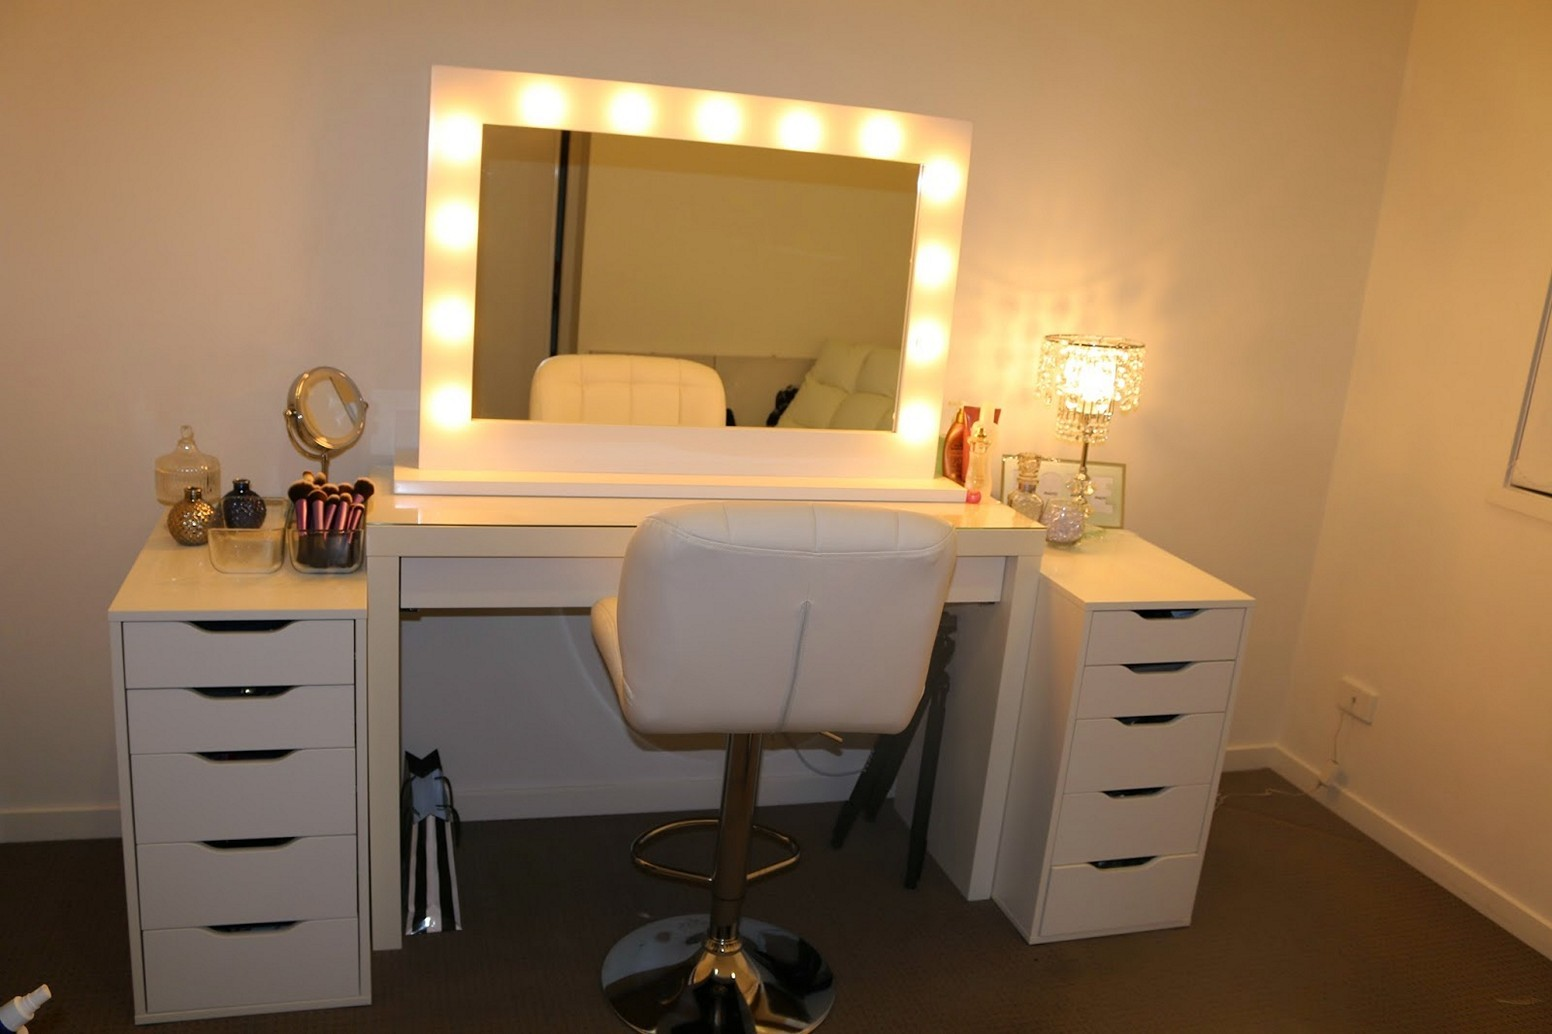 furniture & rug: fancy makeup vanity table with lighted mirror for